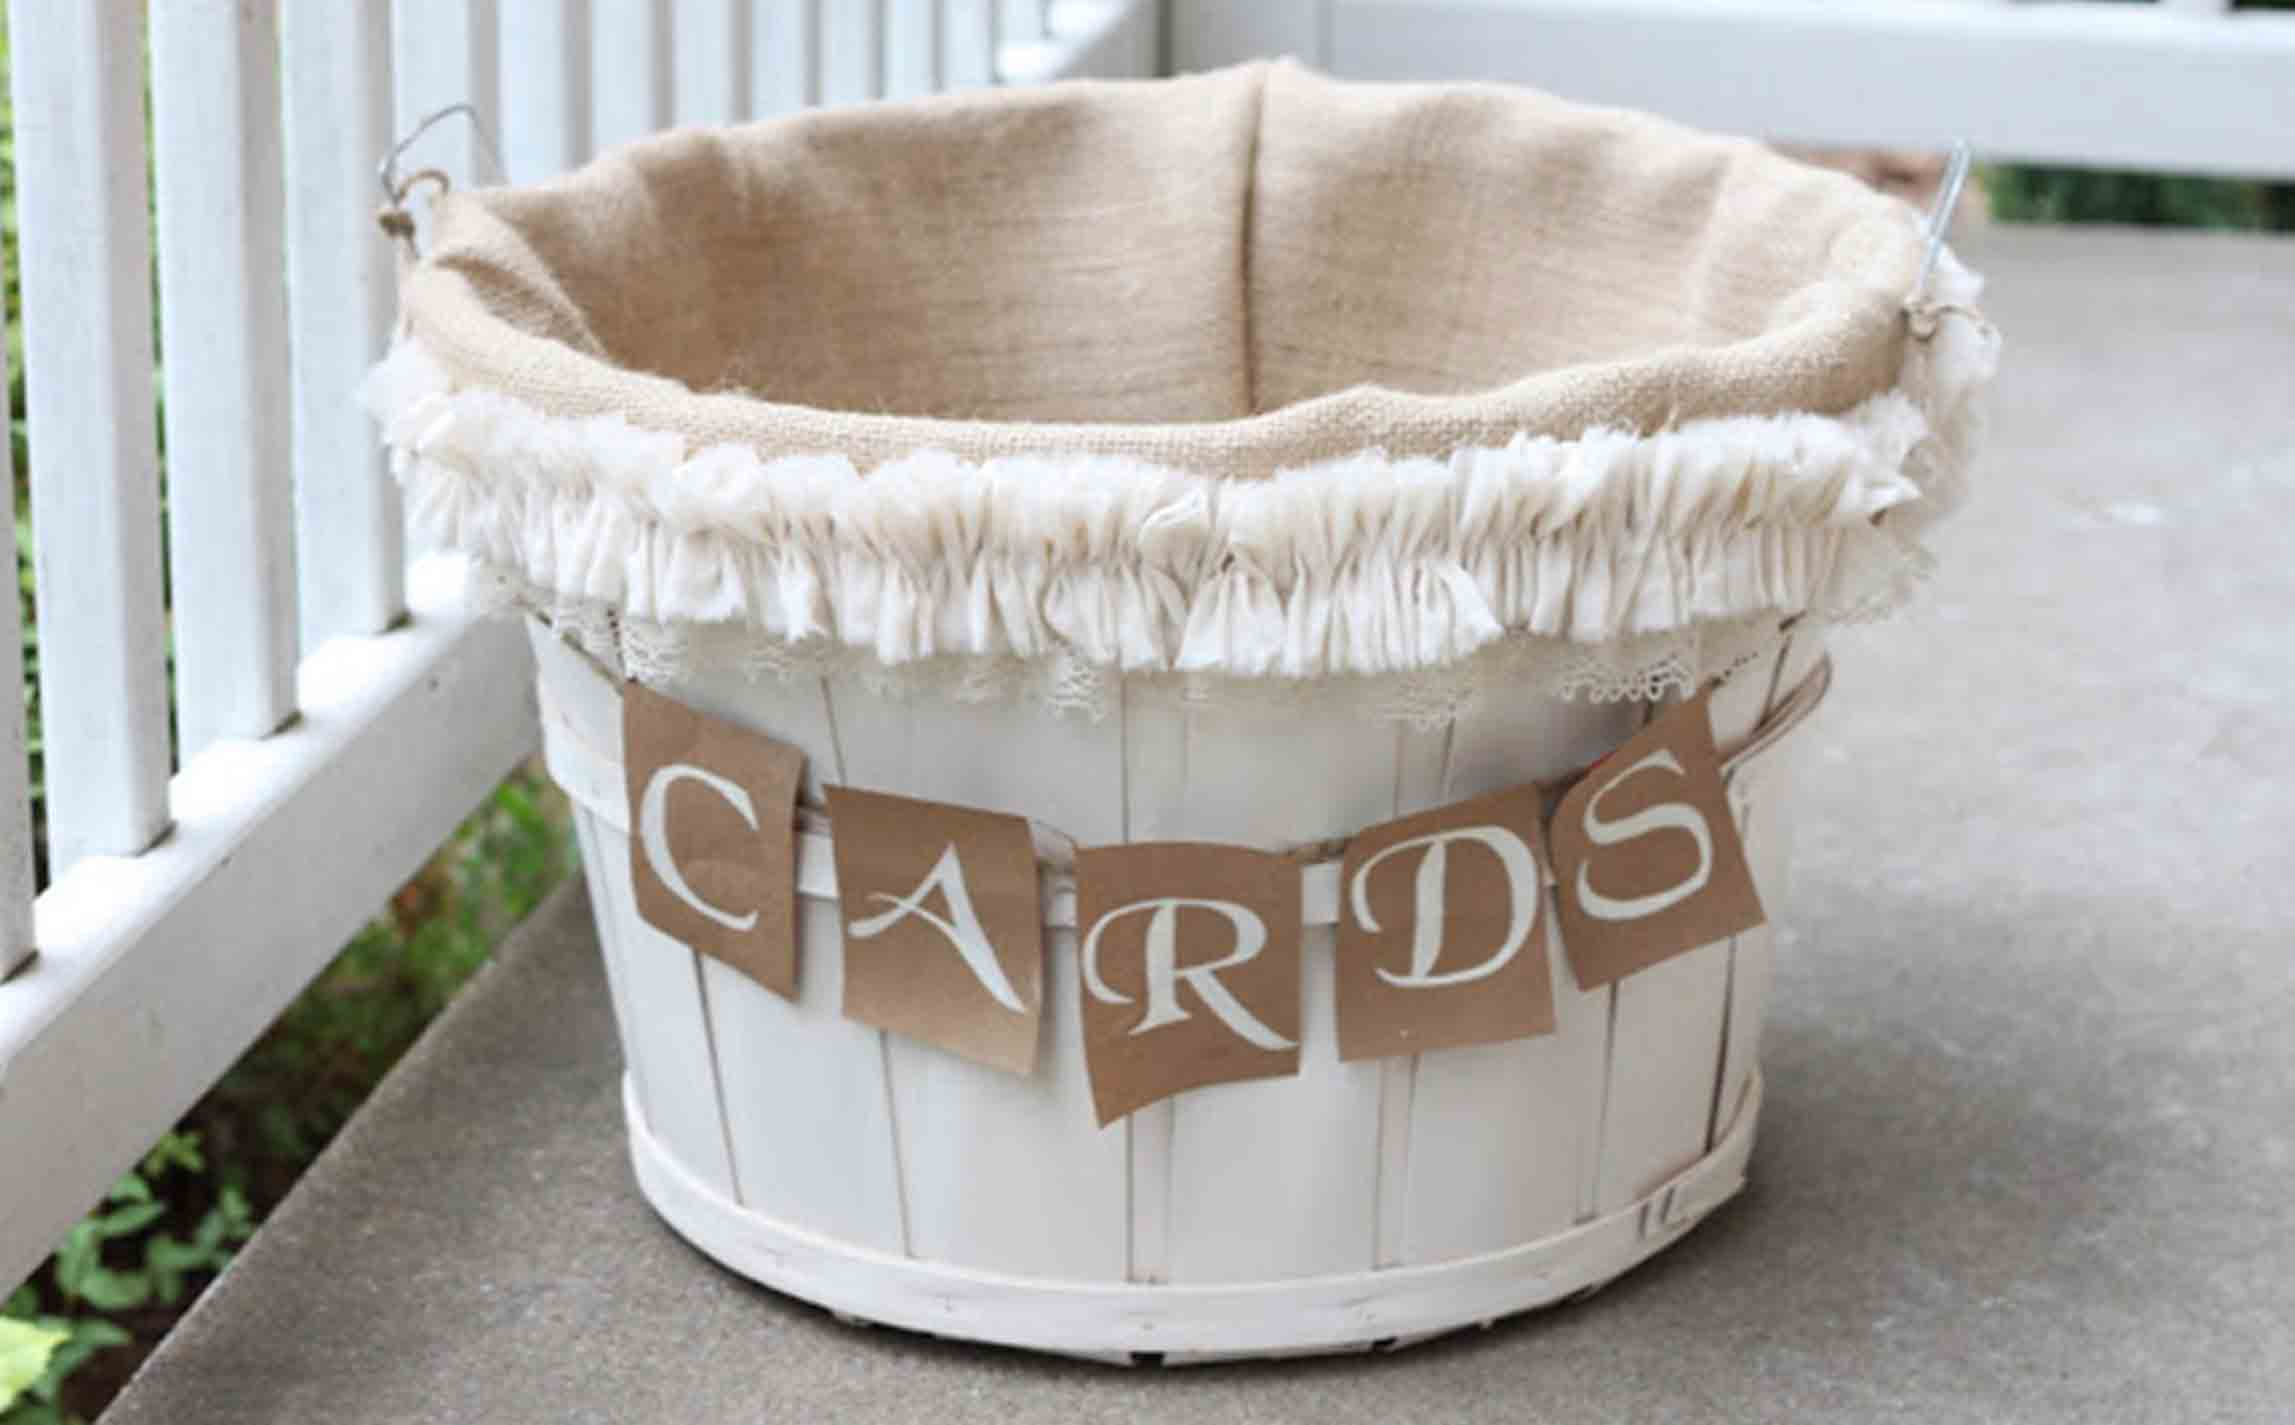 gift card basket made of apple barrel